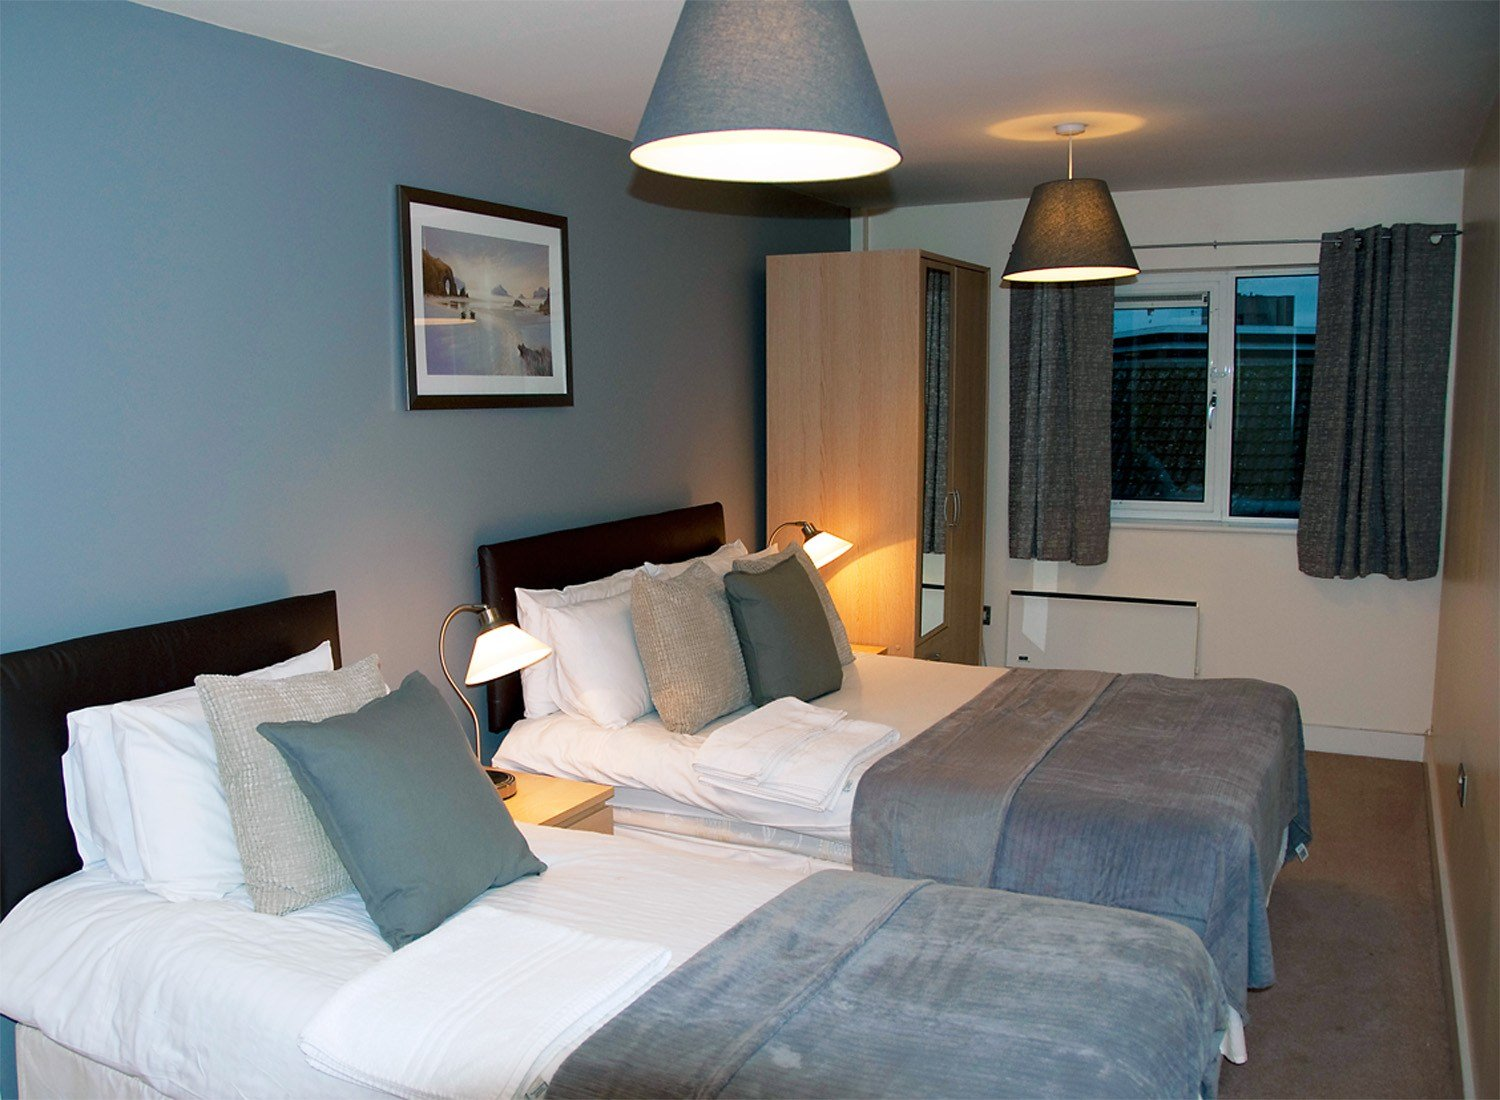 Looking-for-Corporate-Short-Let-Apartments-in-East-Midlands?-Book-Serviced-Accommodation-Leicester-UK-Now-for-low-rates---cheaper-than-a-Hotel-+-Free-Wifi!-Urban-Stay